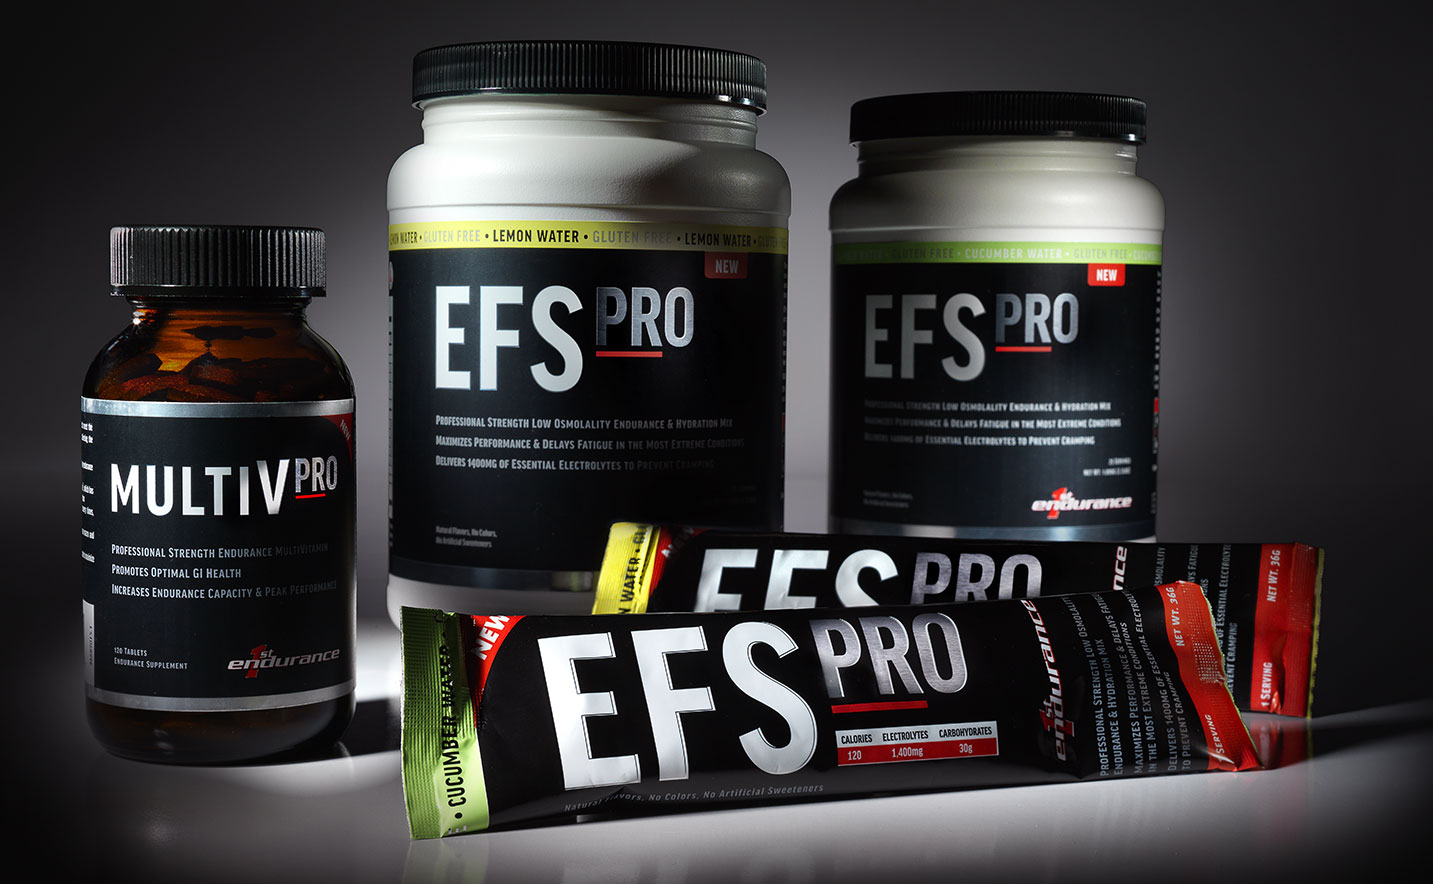 First Endurance Supplements & Sports Nutrition